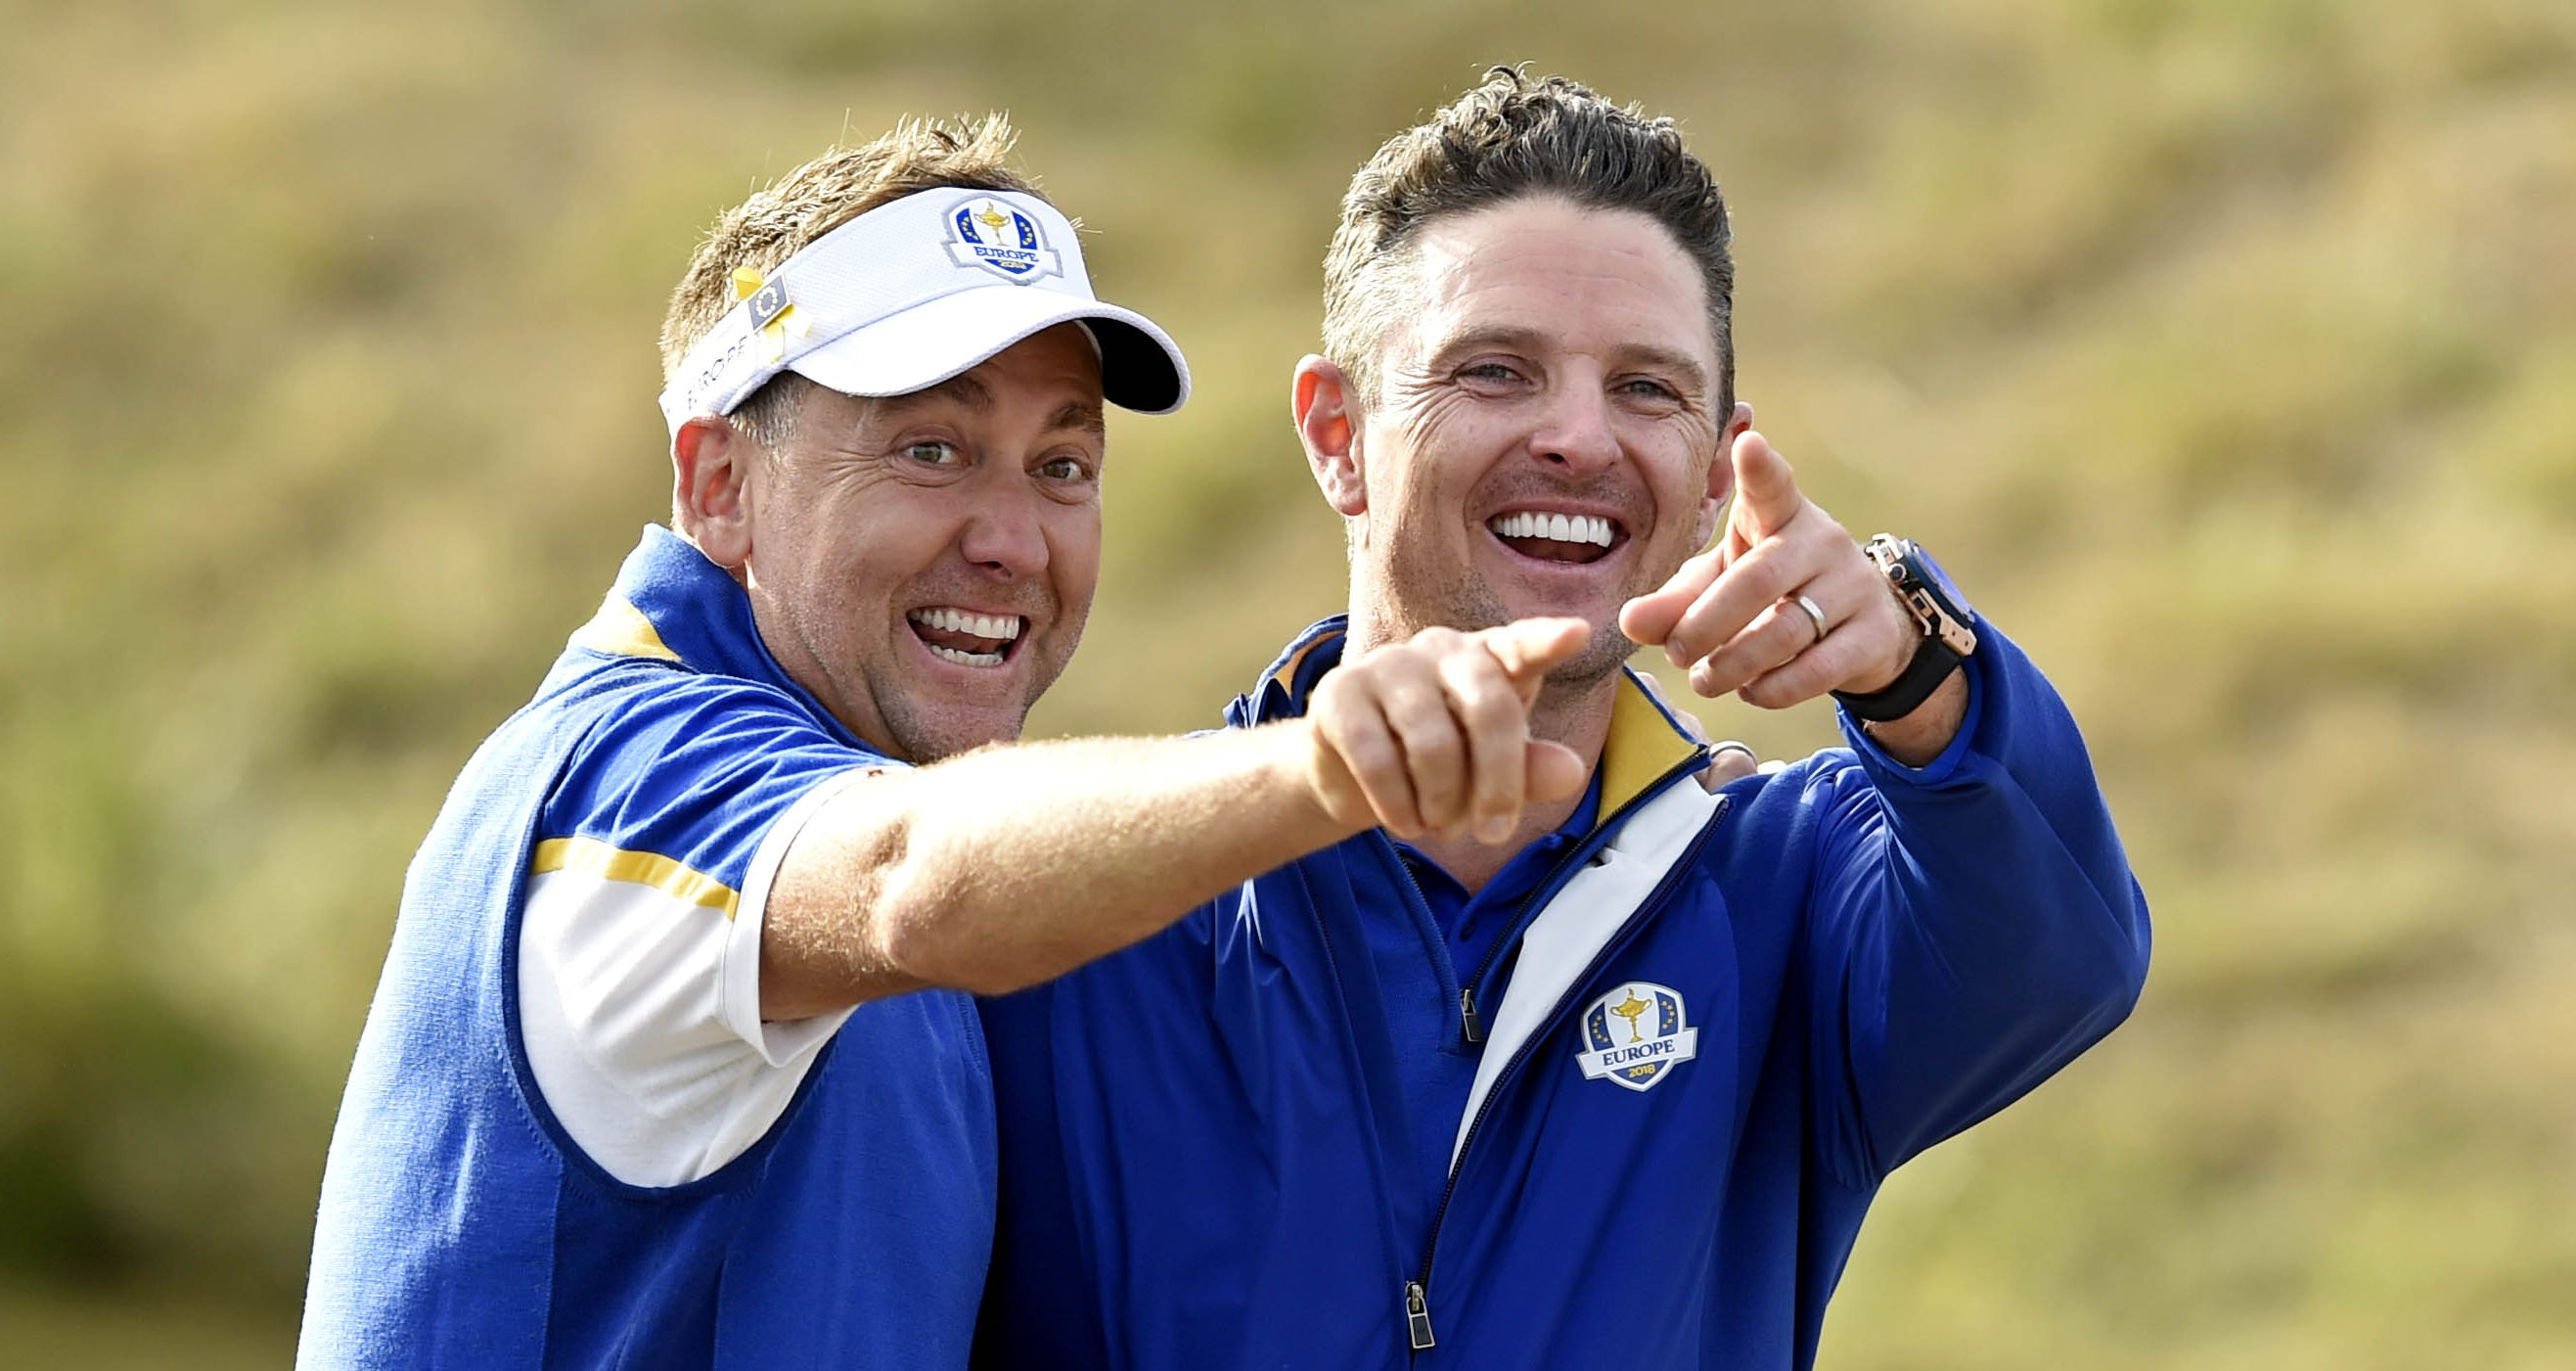 Sep 30, 2018; Paris, FRA; Europe golfer Ian Poulter and Europe golfer Justin Rose celebrate after the Ryder Cup Sunday singles matches at Le Golf National. Mandatory Credit: Ian Rutherford-USA TODAY Sports